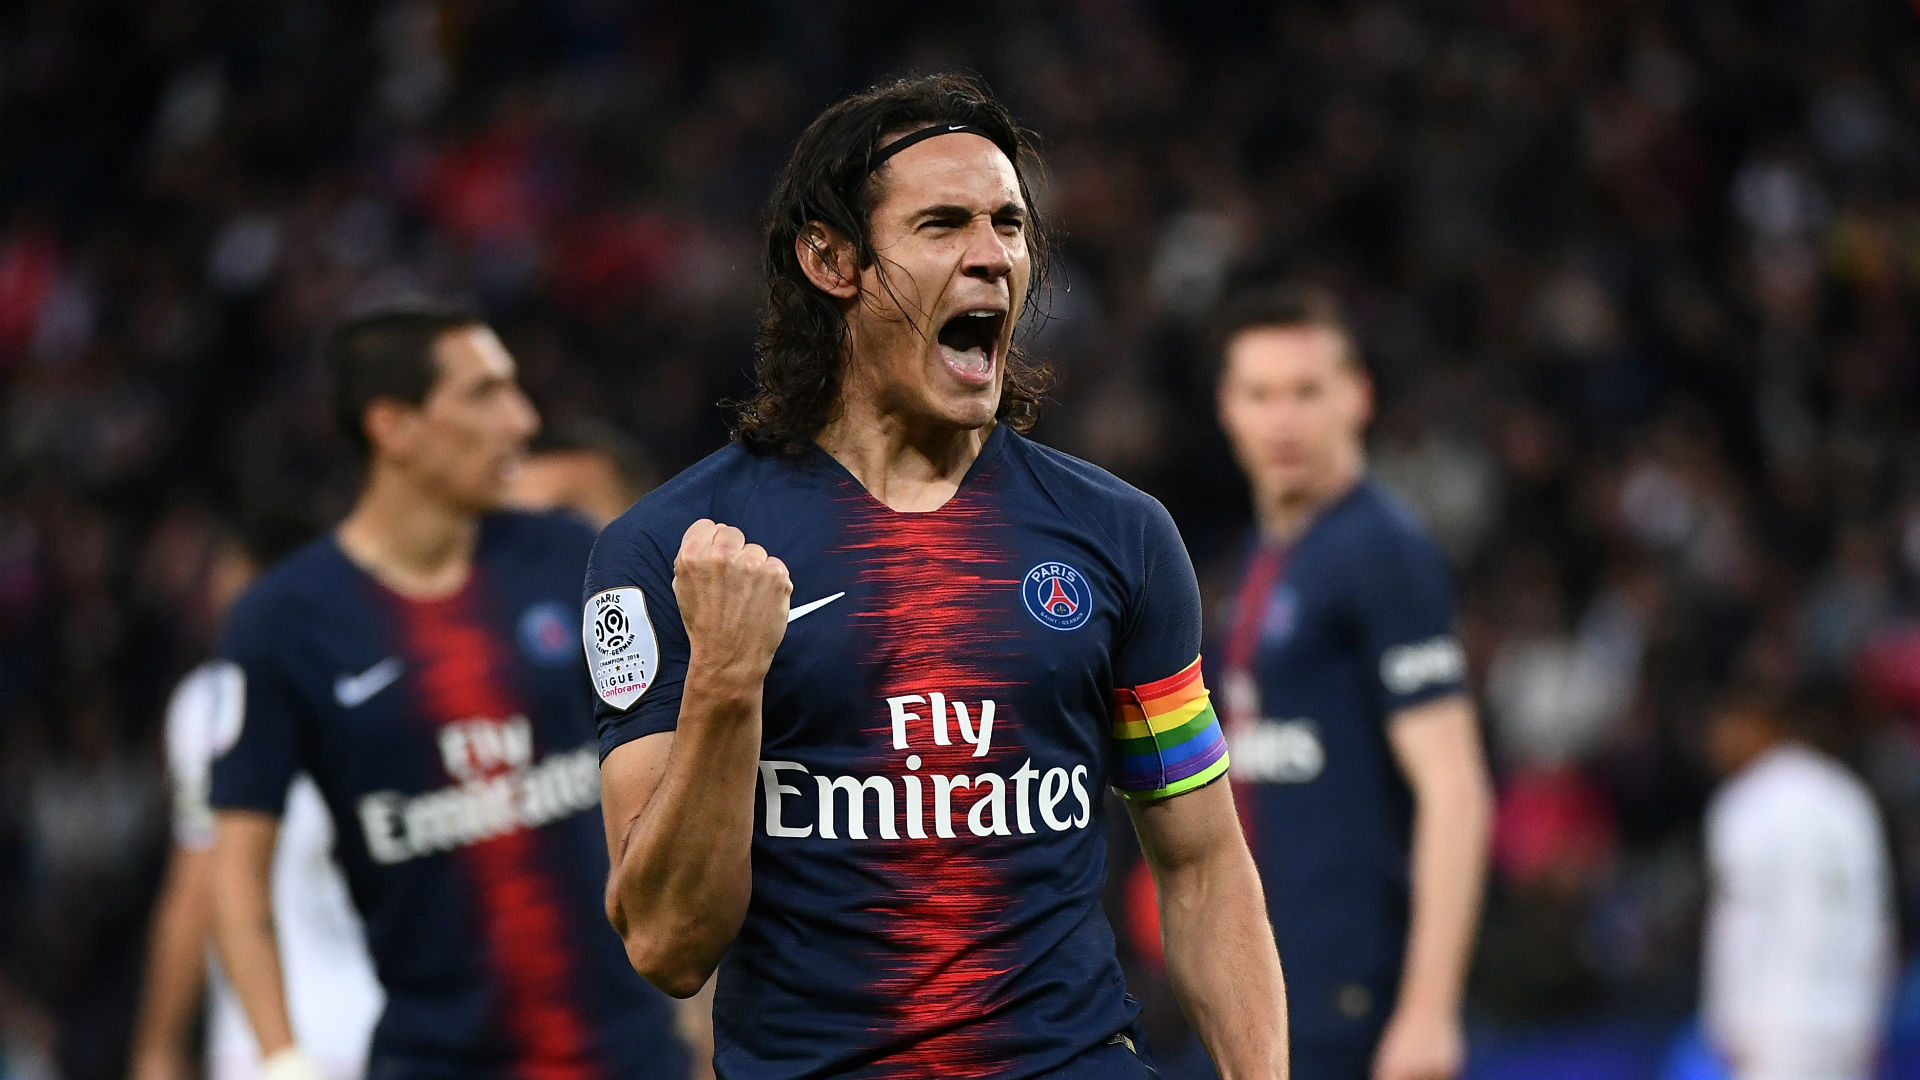 Of course I will be here – Cavani wants to stay at PSG